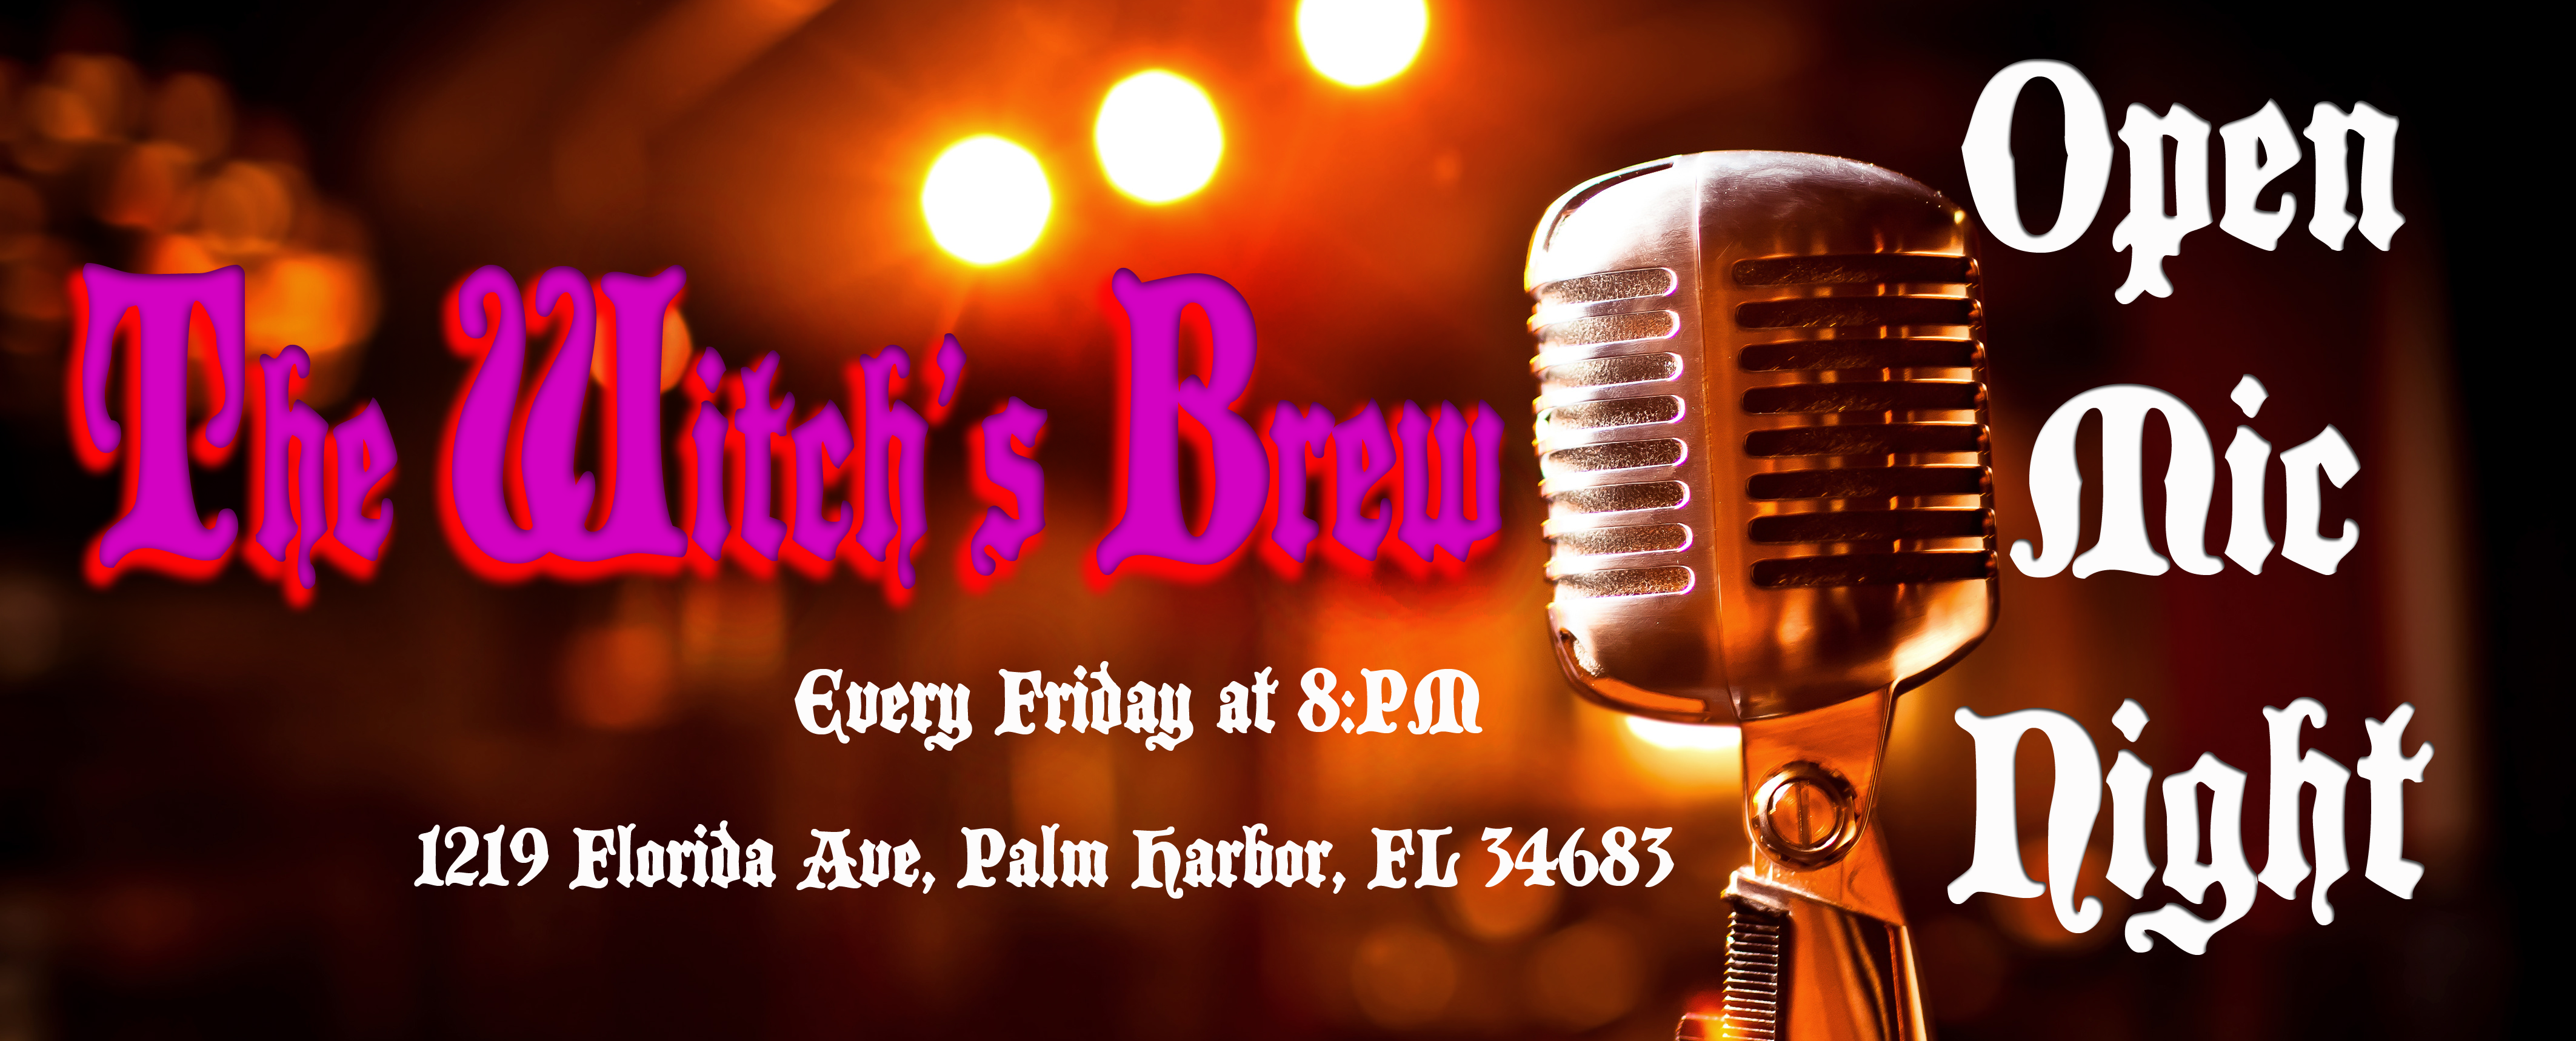 the witch's brew open mic night hosted by bonnie bowers